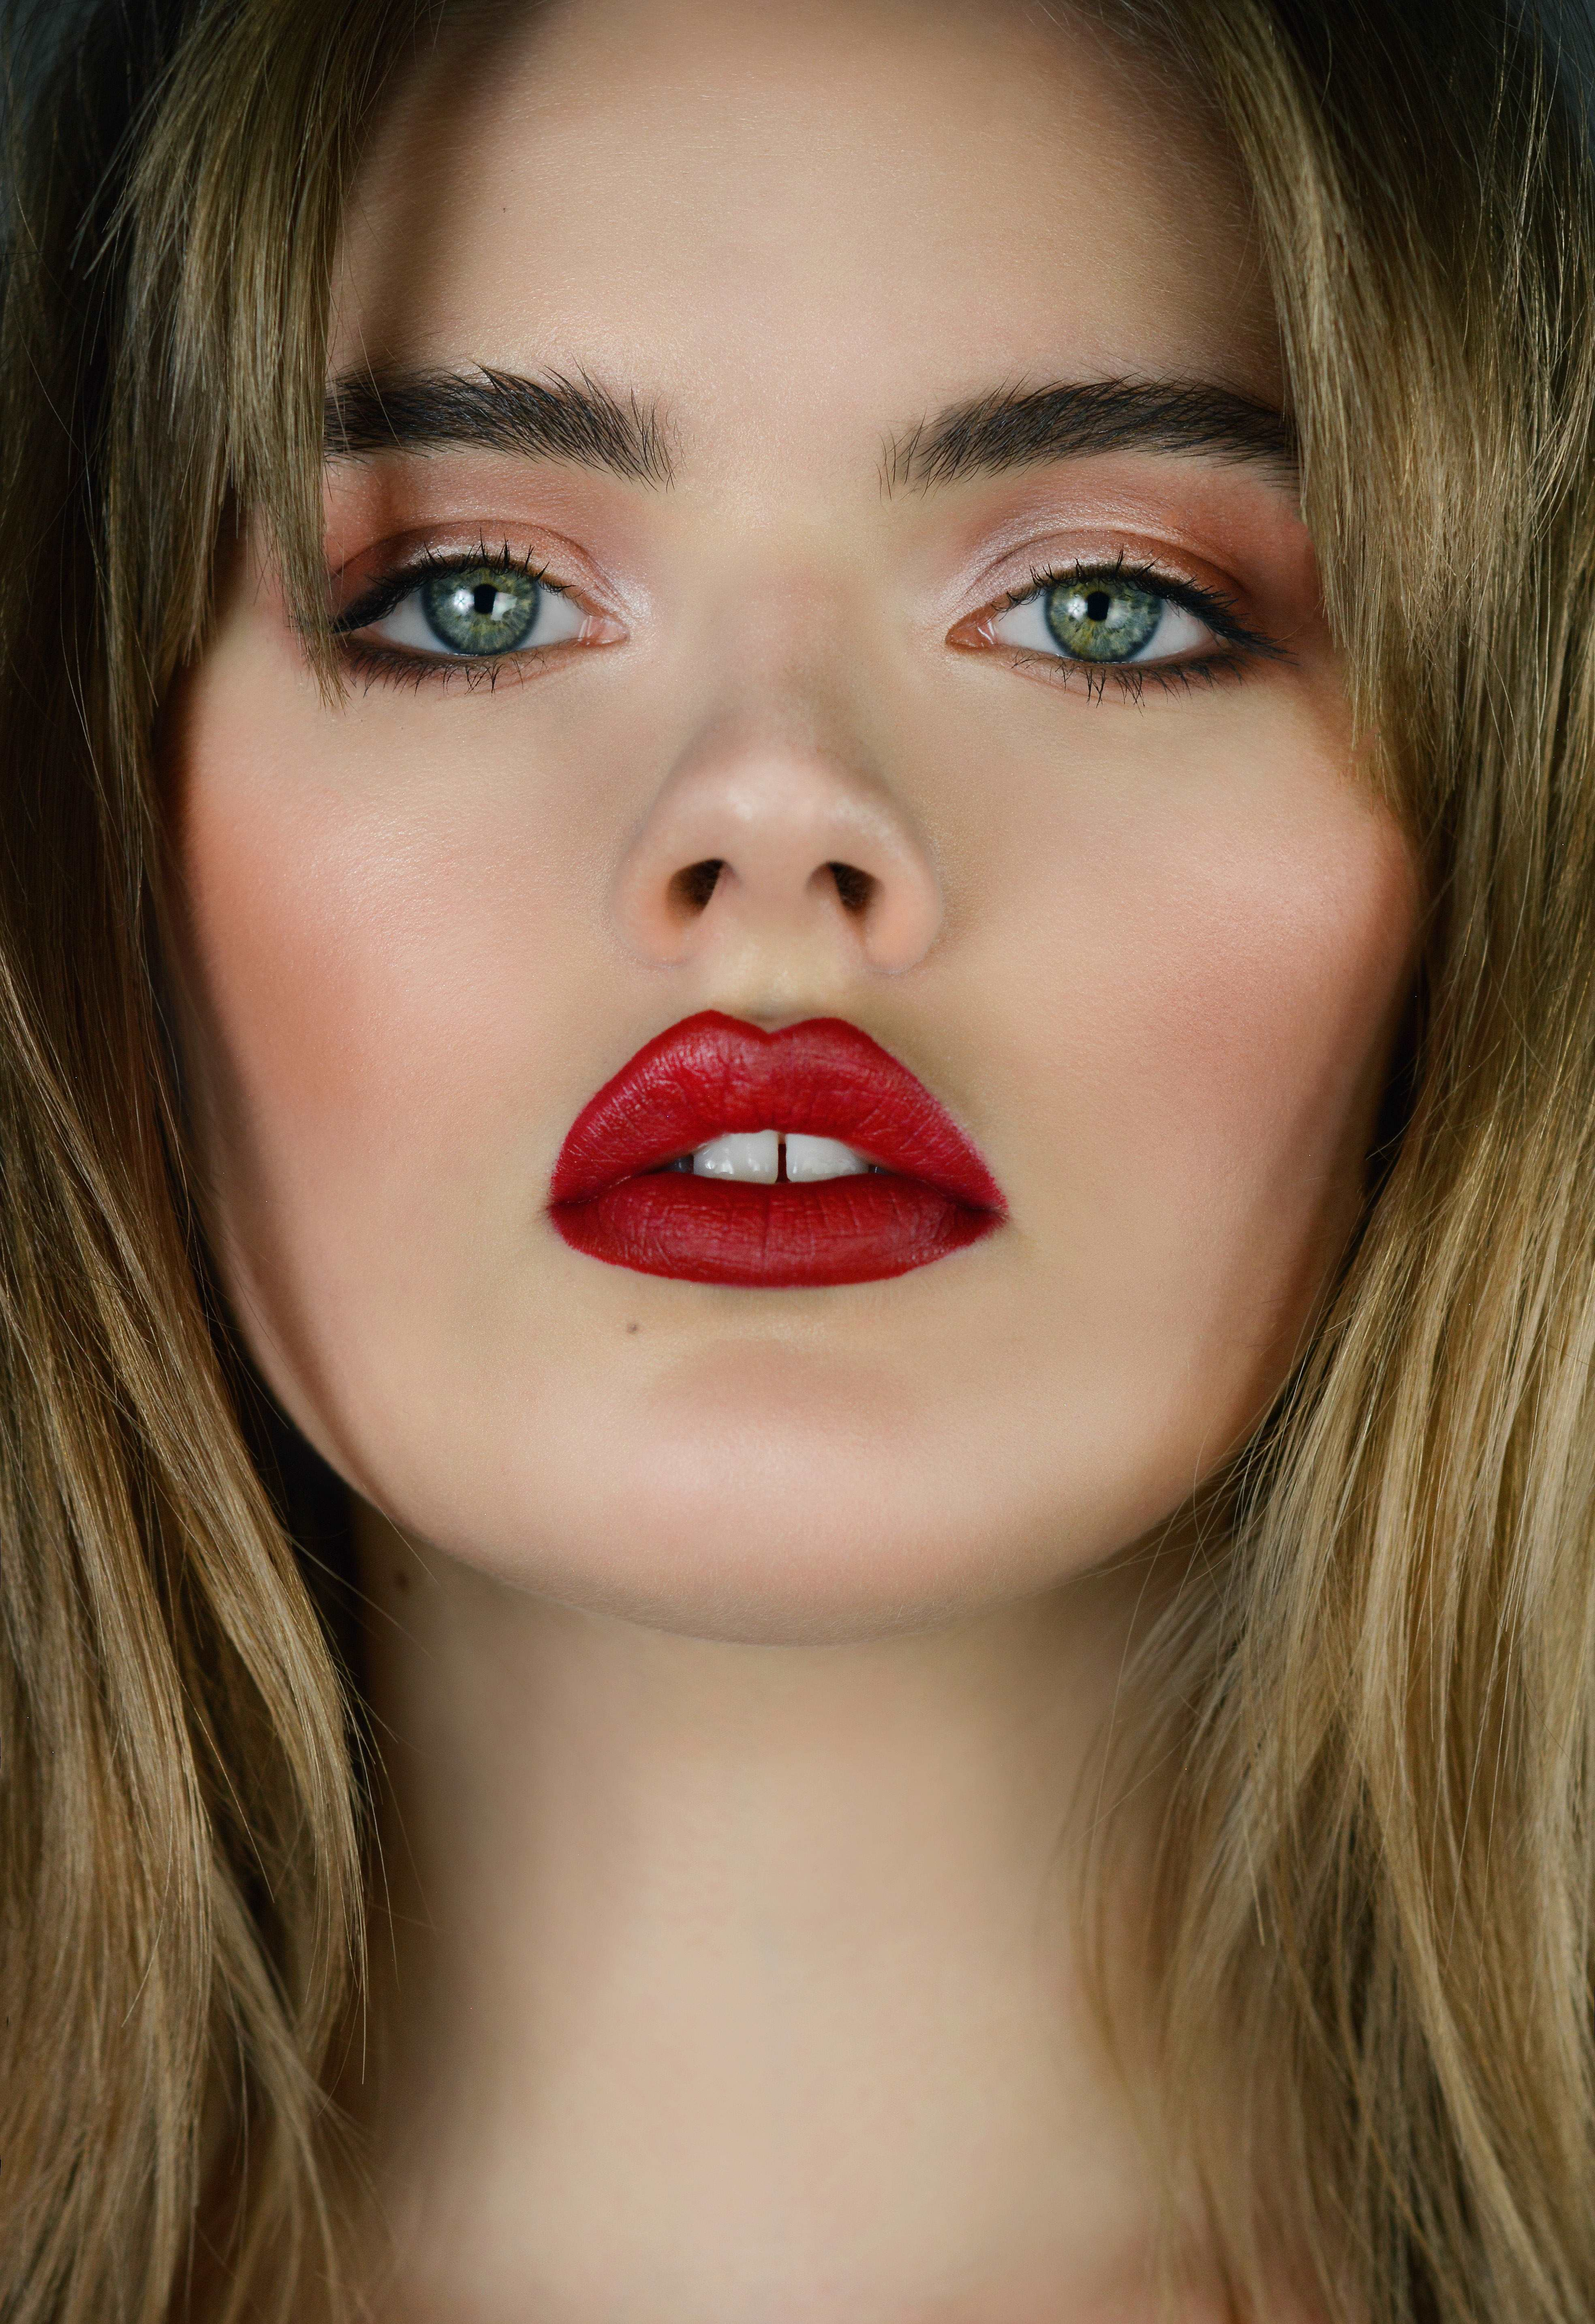 – 1 c Olivia Bey- Katherine Eastman Mairelys make up artist beauty portrait photography Miami south florida beauty classic red lipstick